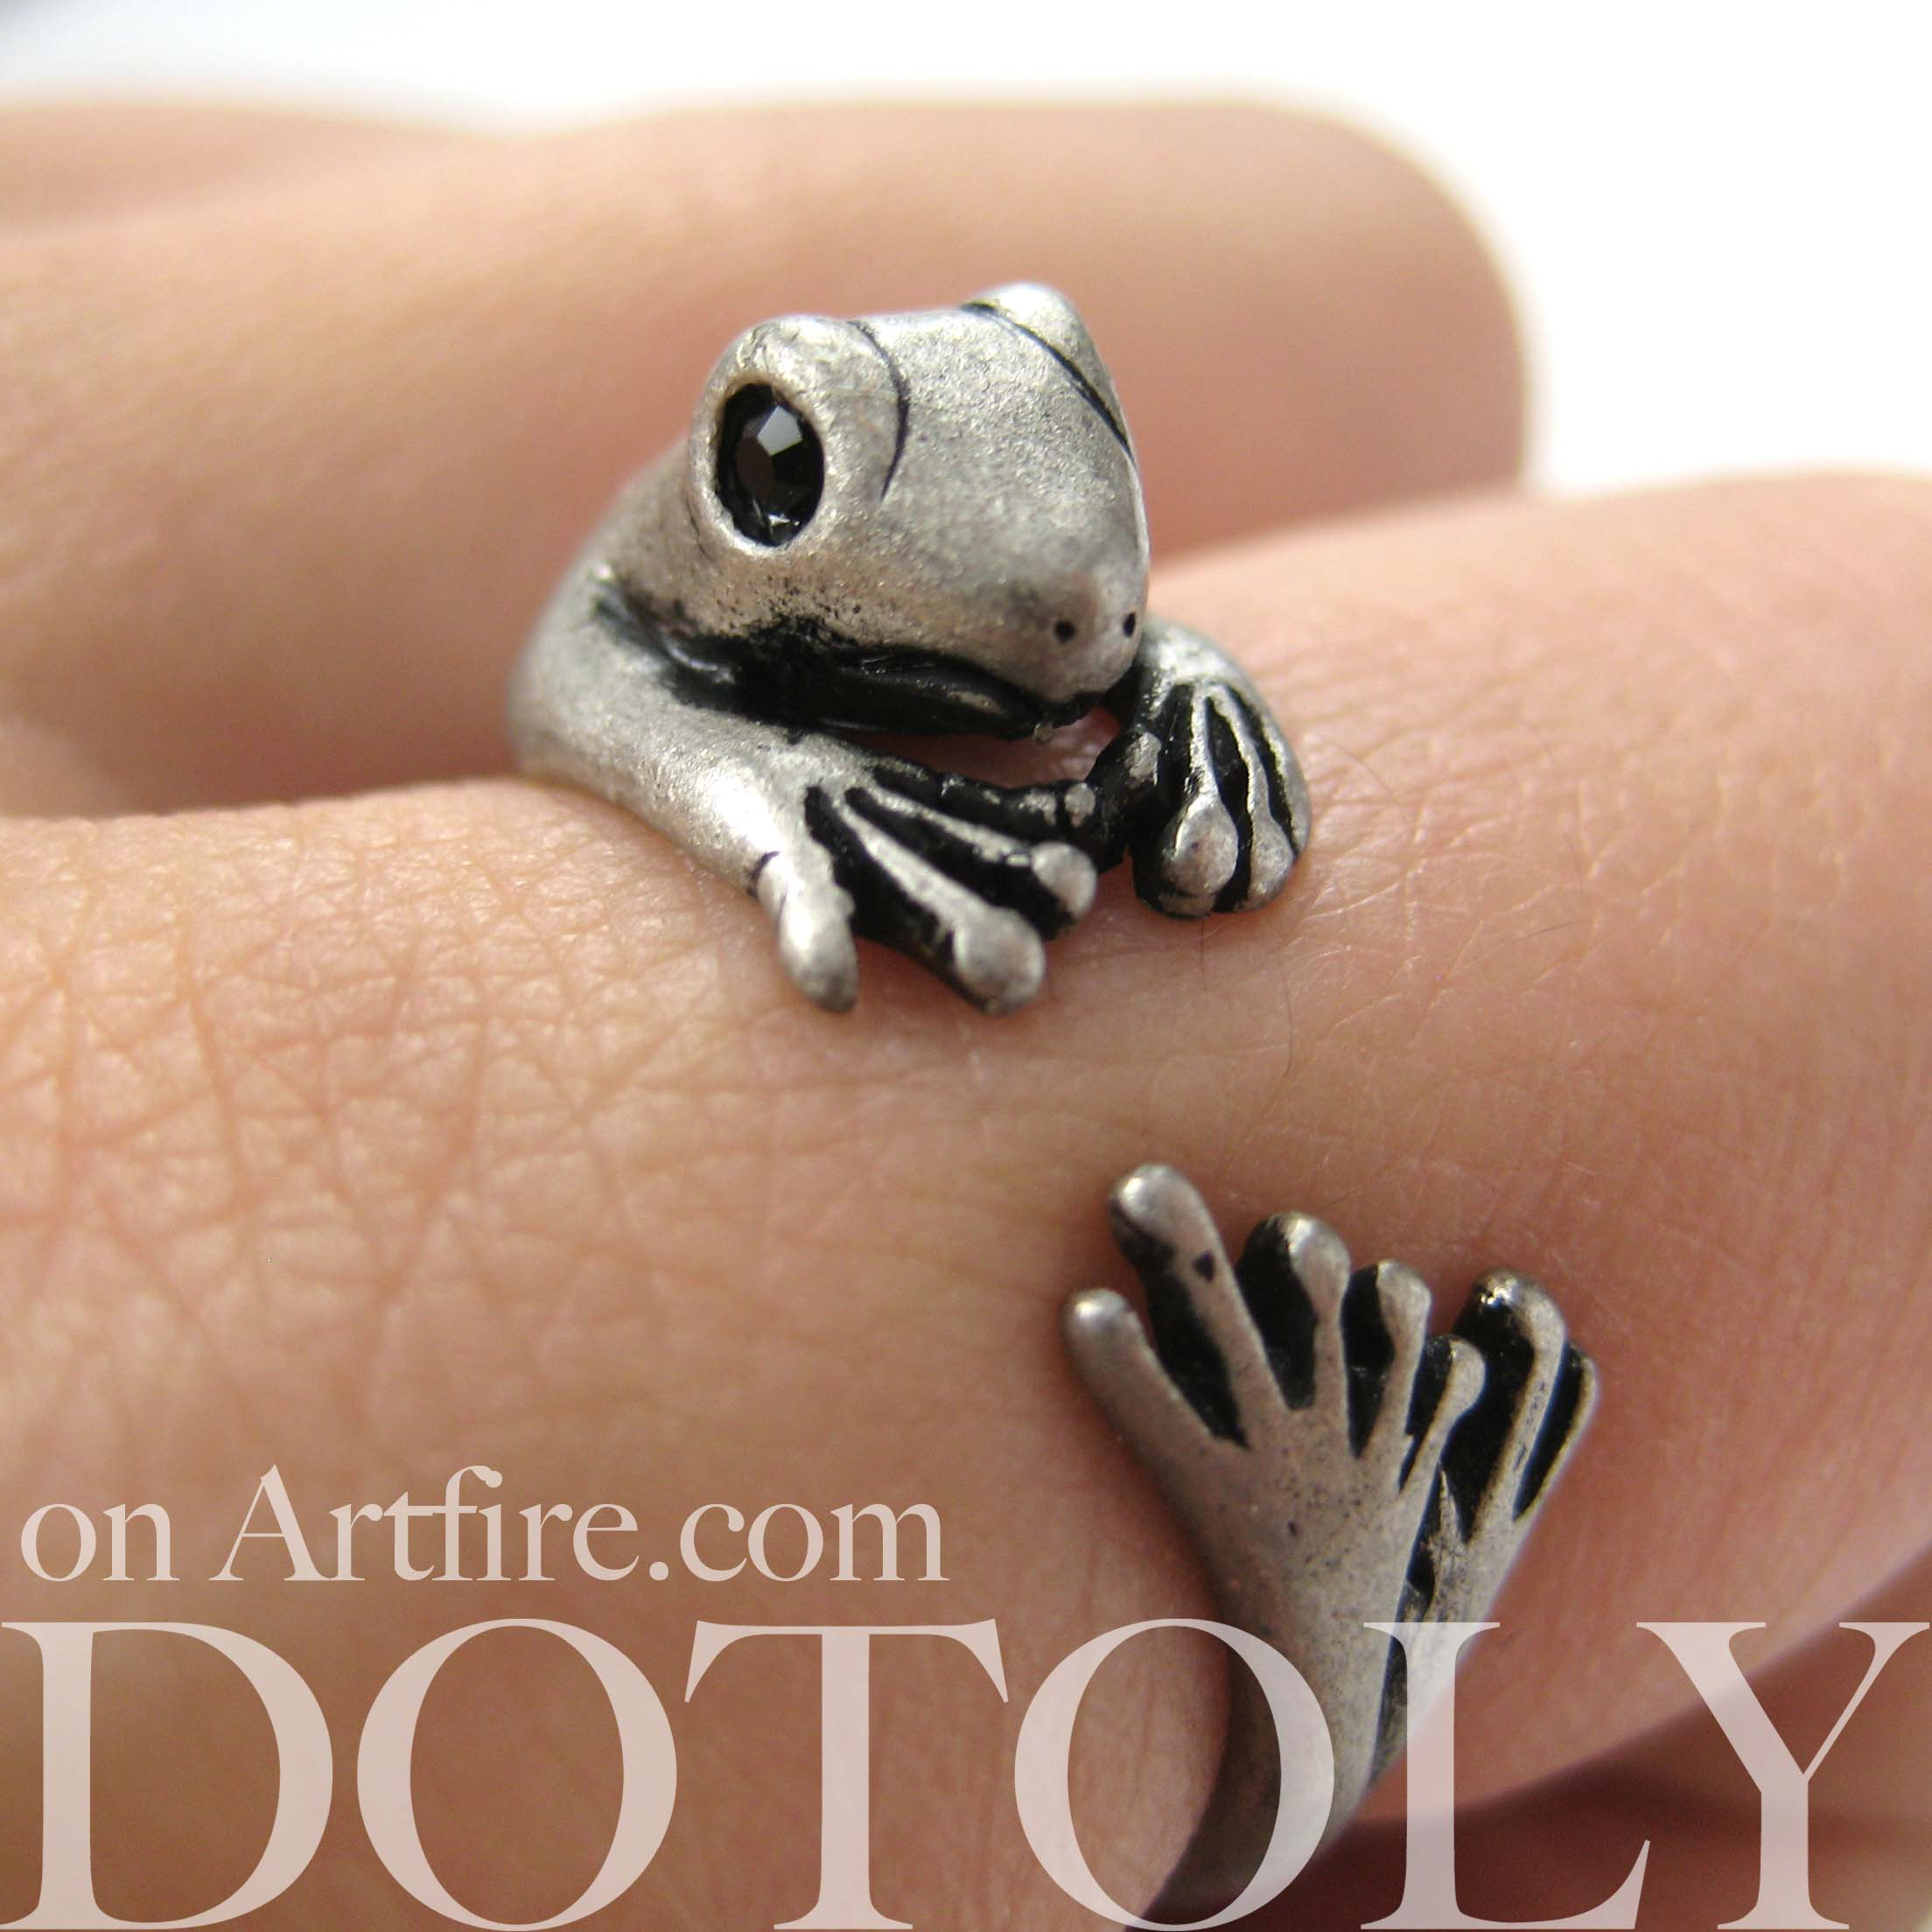 animal jewelry lizard in steel punk wedding stainless from rock gifts high item separable rings style women quality for black party men